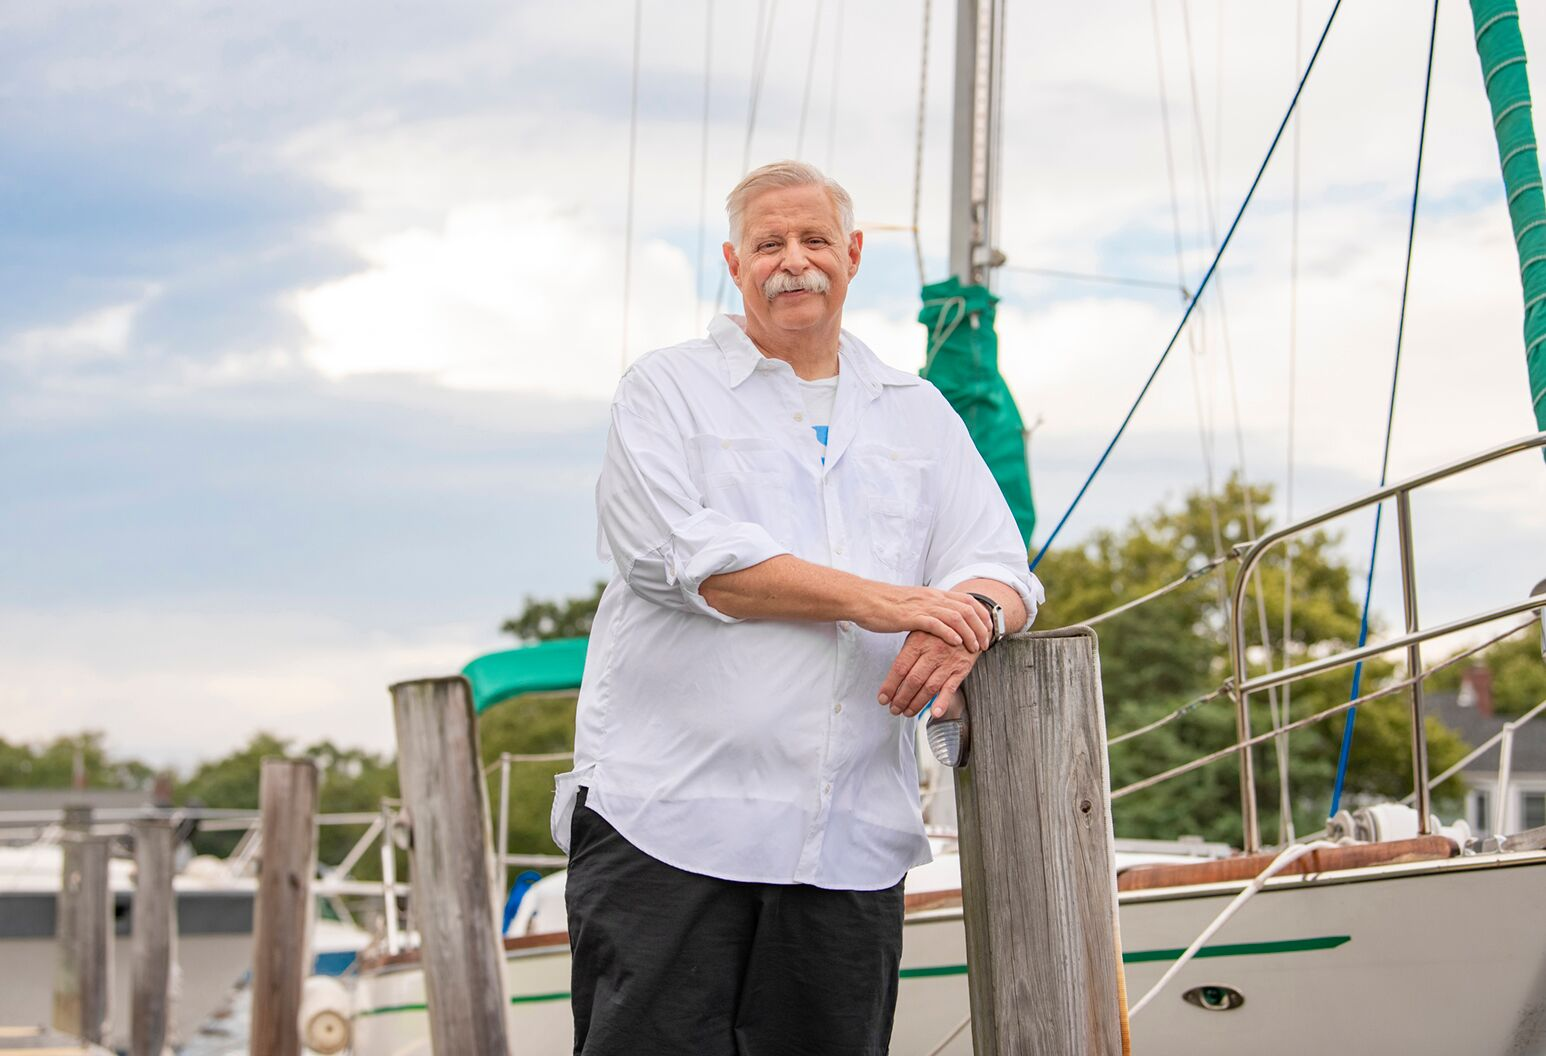 Man in his 60s stands next to a sailboat on an overcast day.